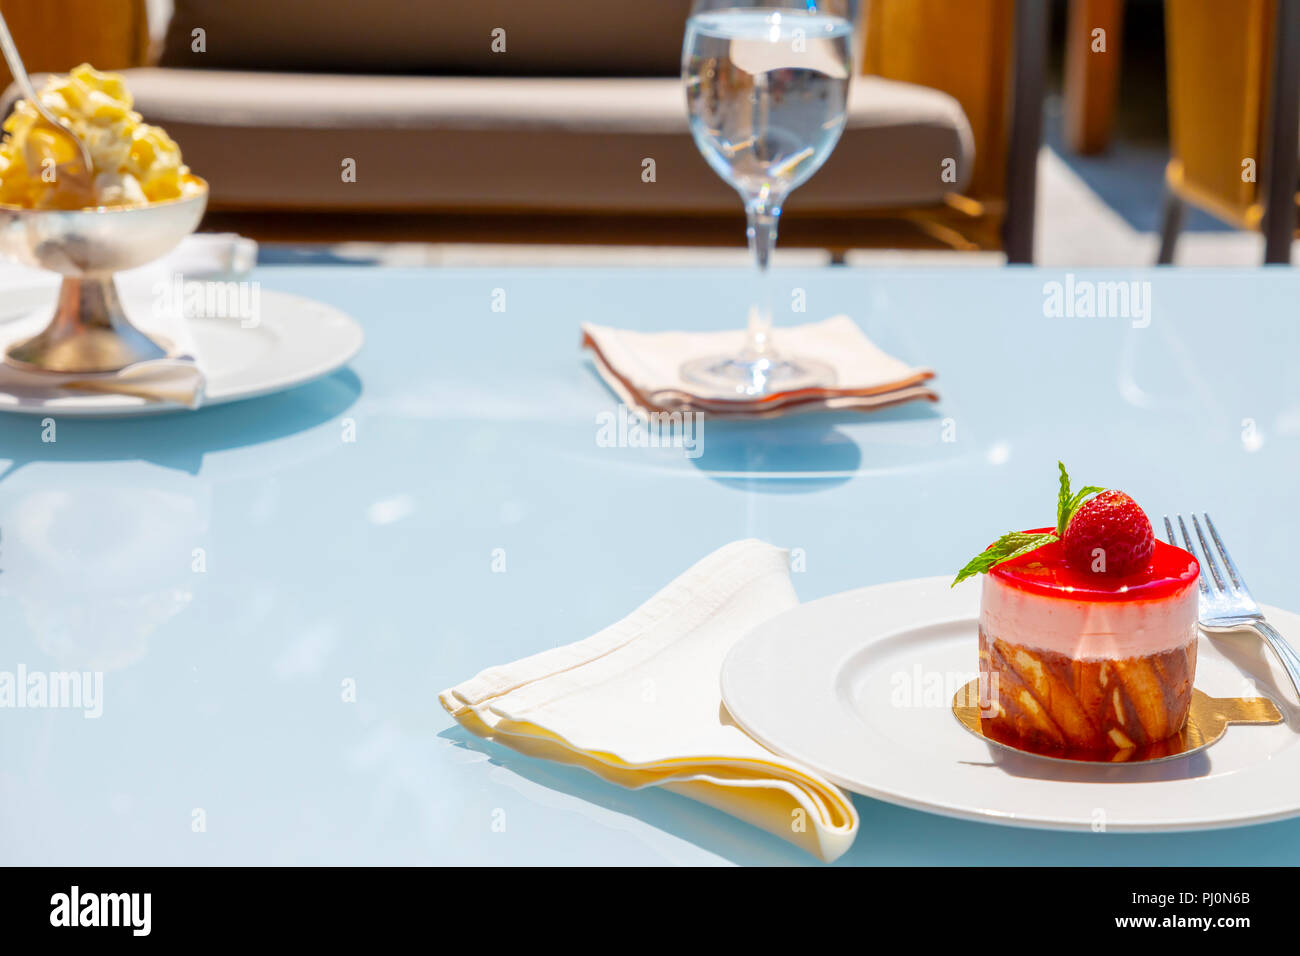 Strawberry Cake and Glass of Water. - Stock Image